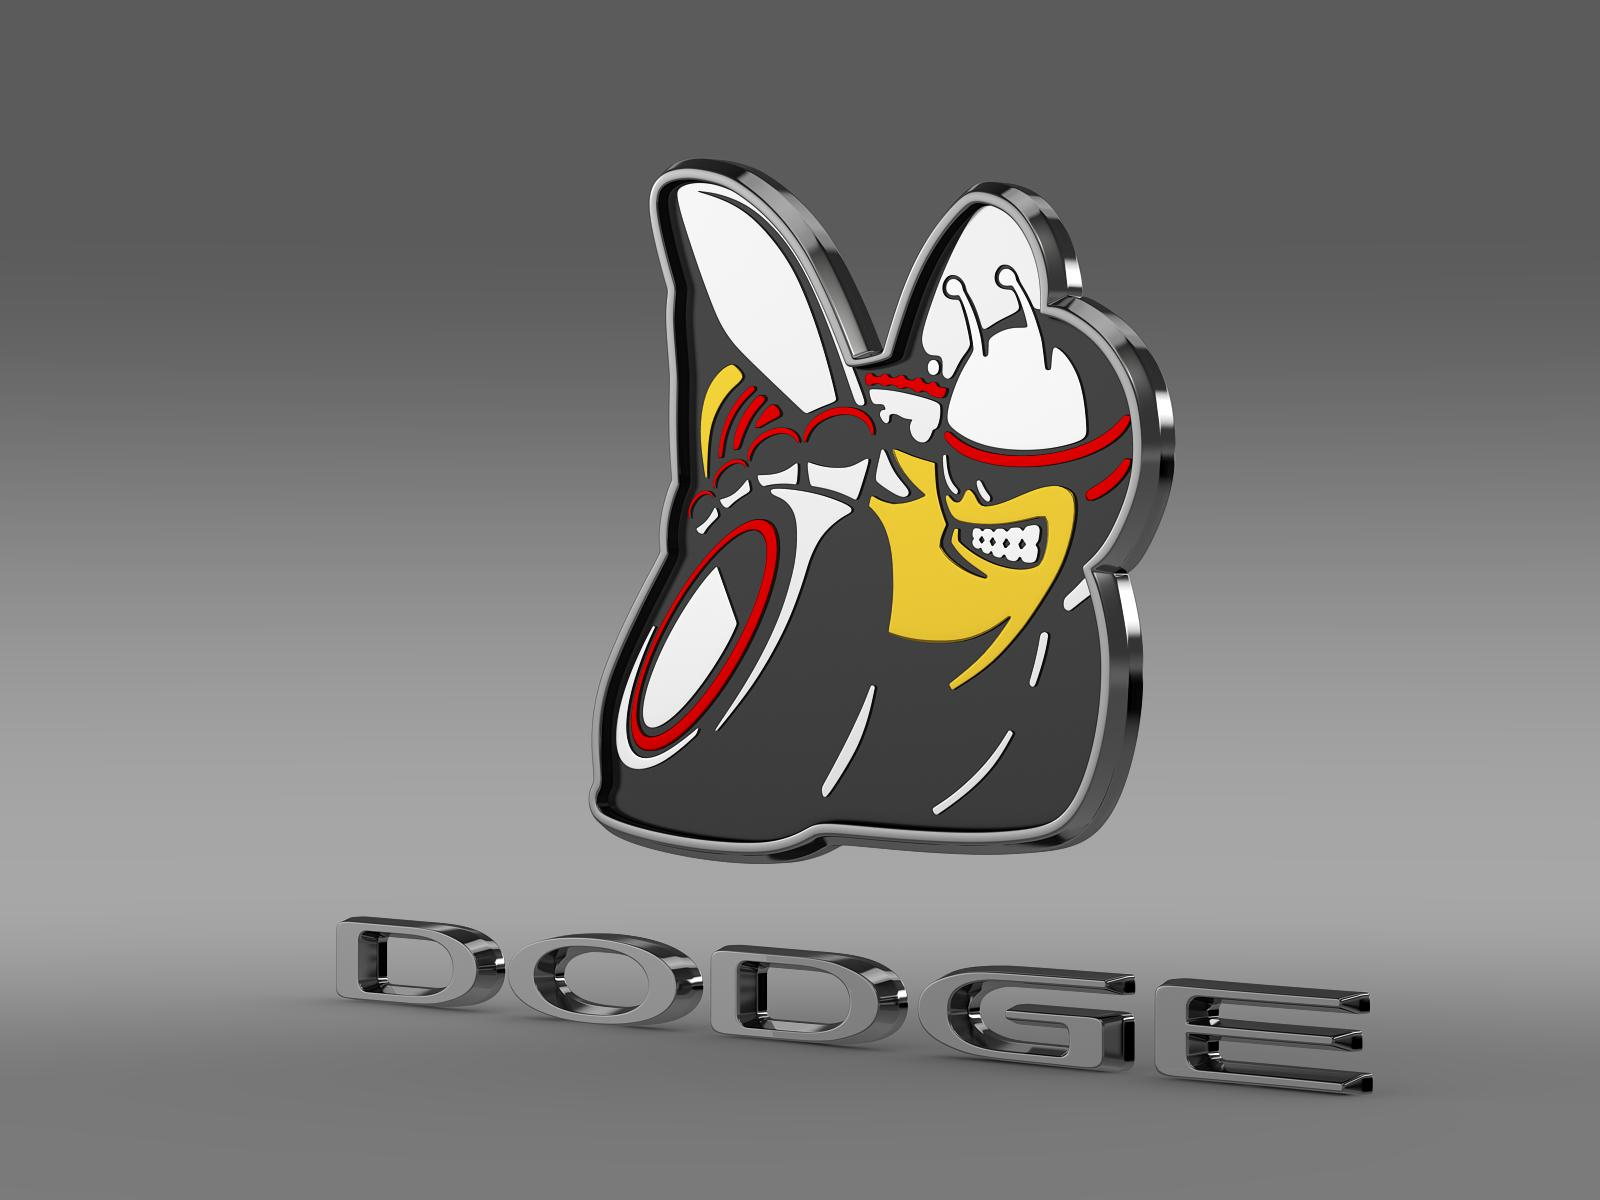 dodge bee logo 3d model 3ds max fbx c4d lwo ma mb hrc xsi obj 162821